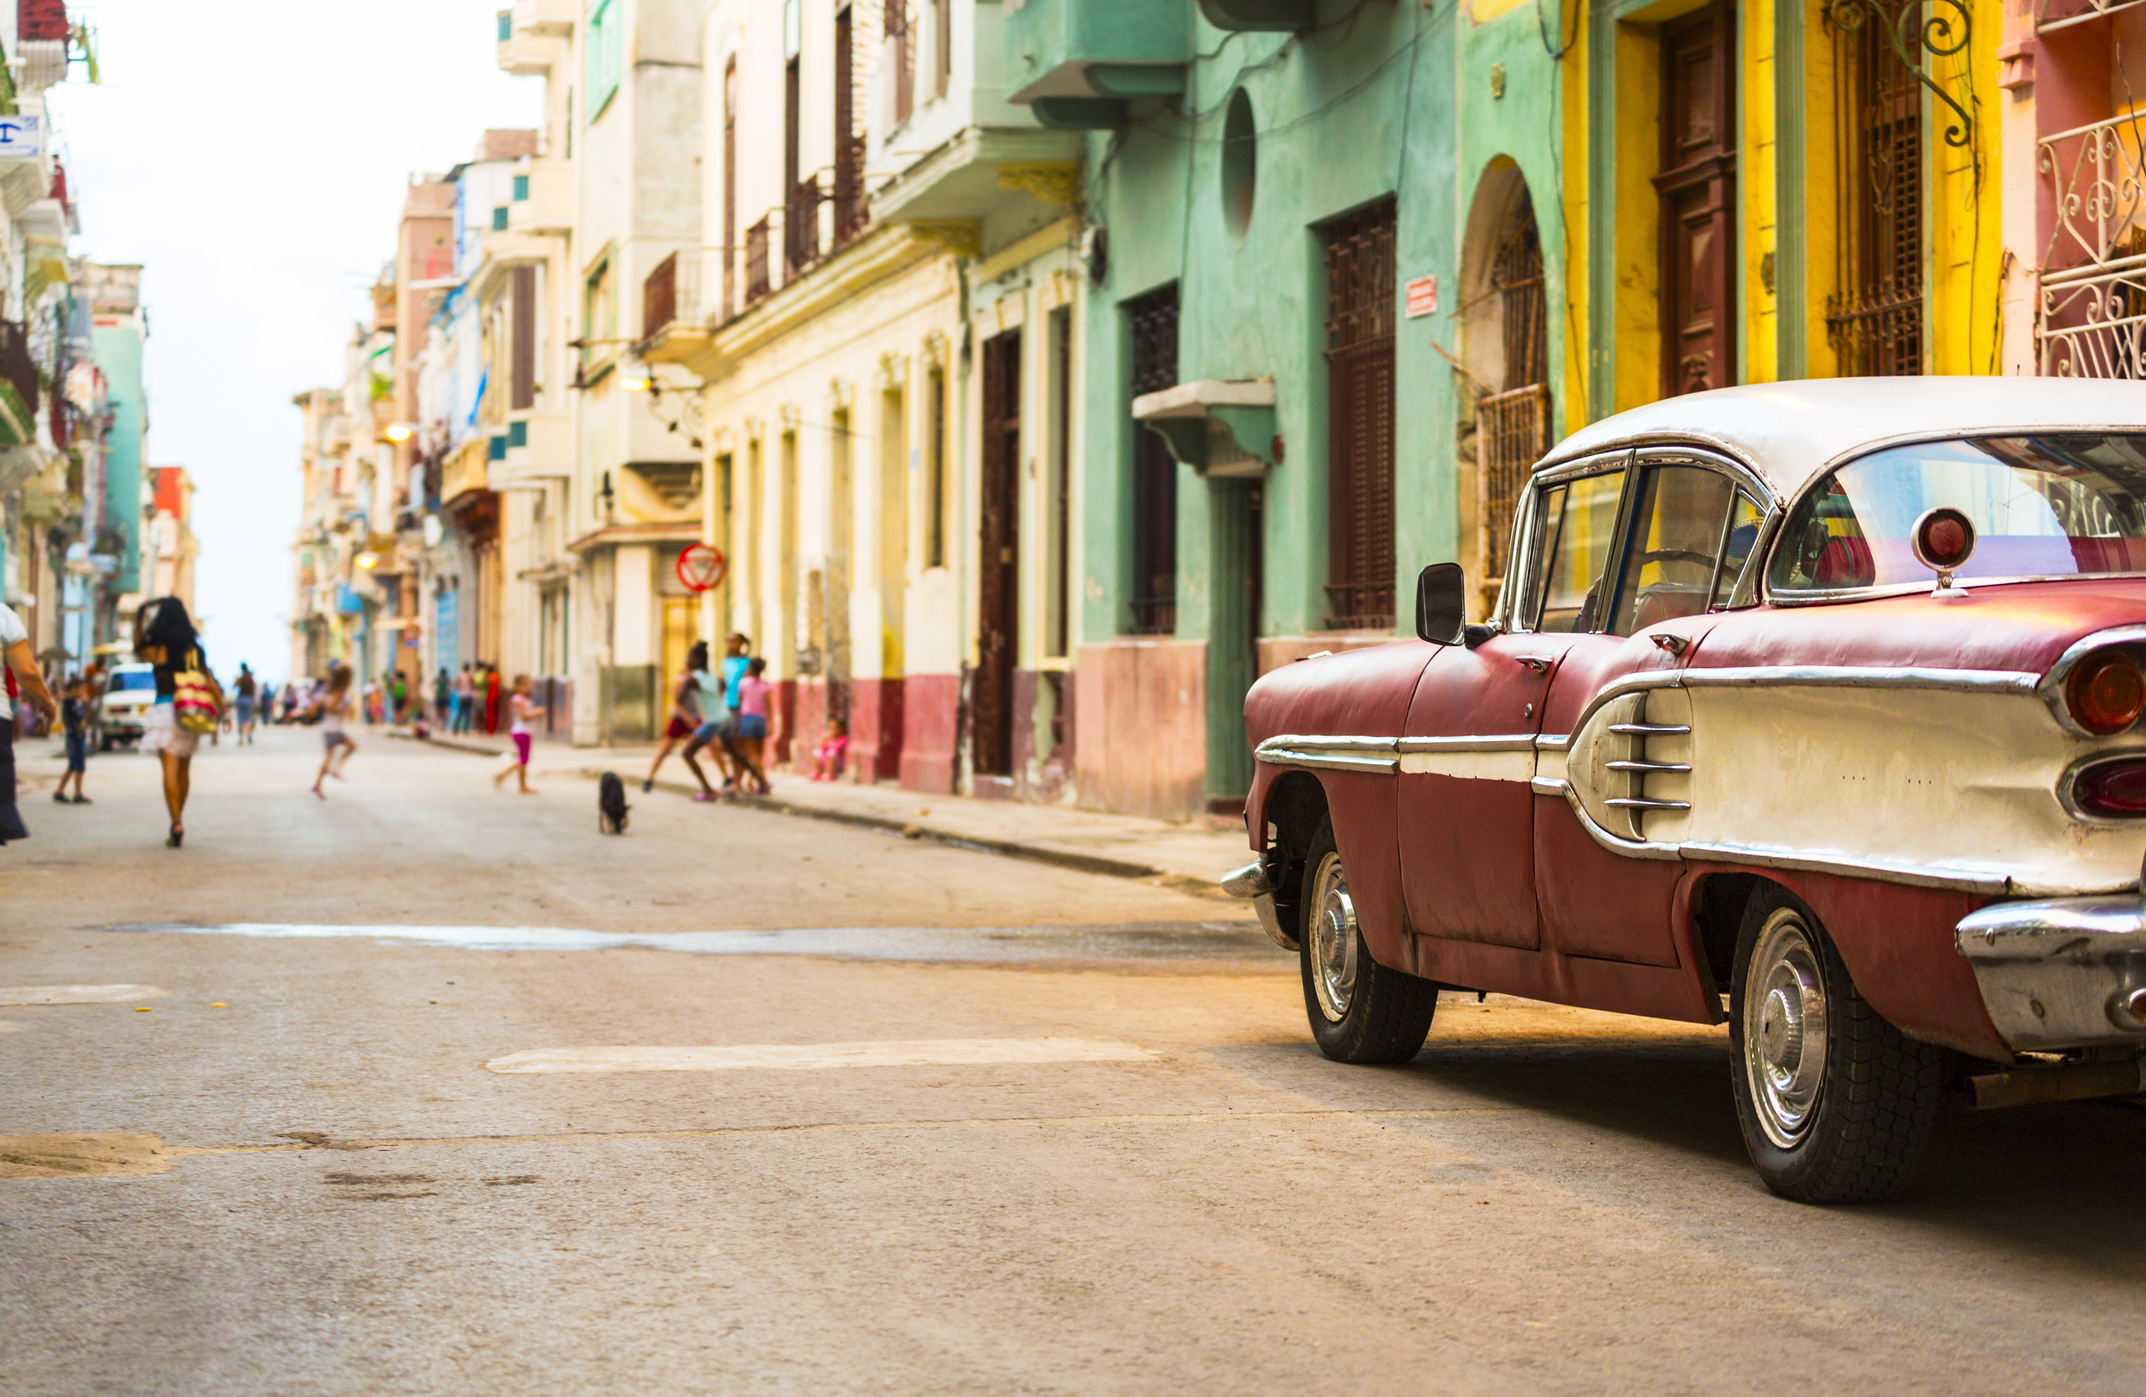 Street in Havana, Cuba with vitage american car